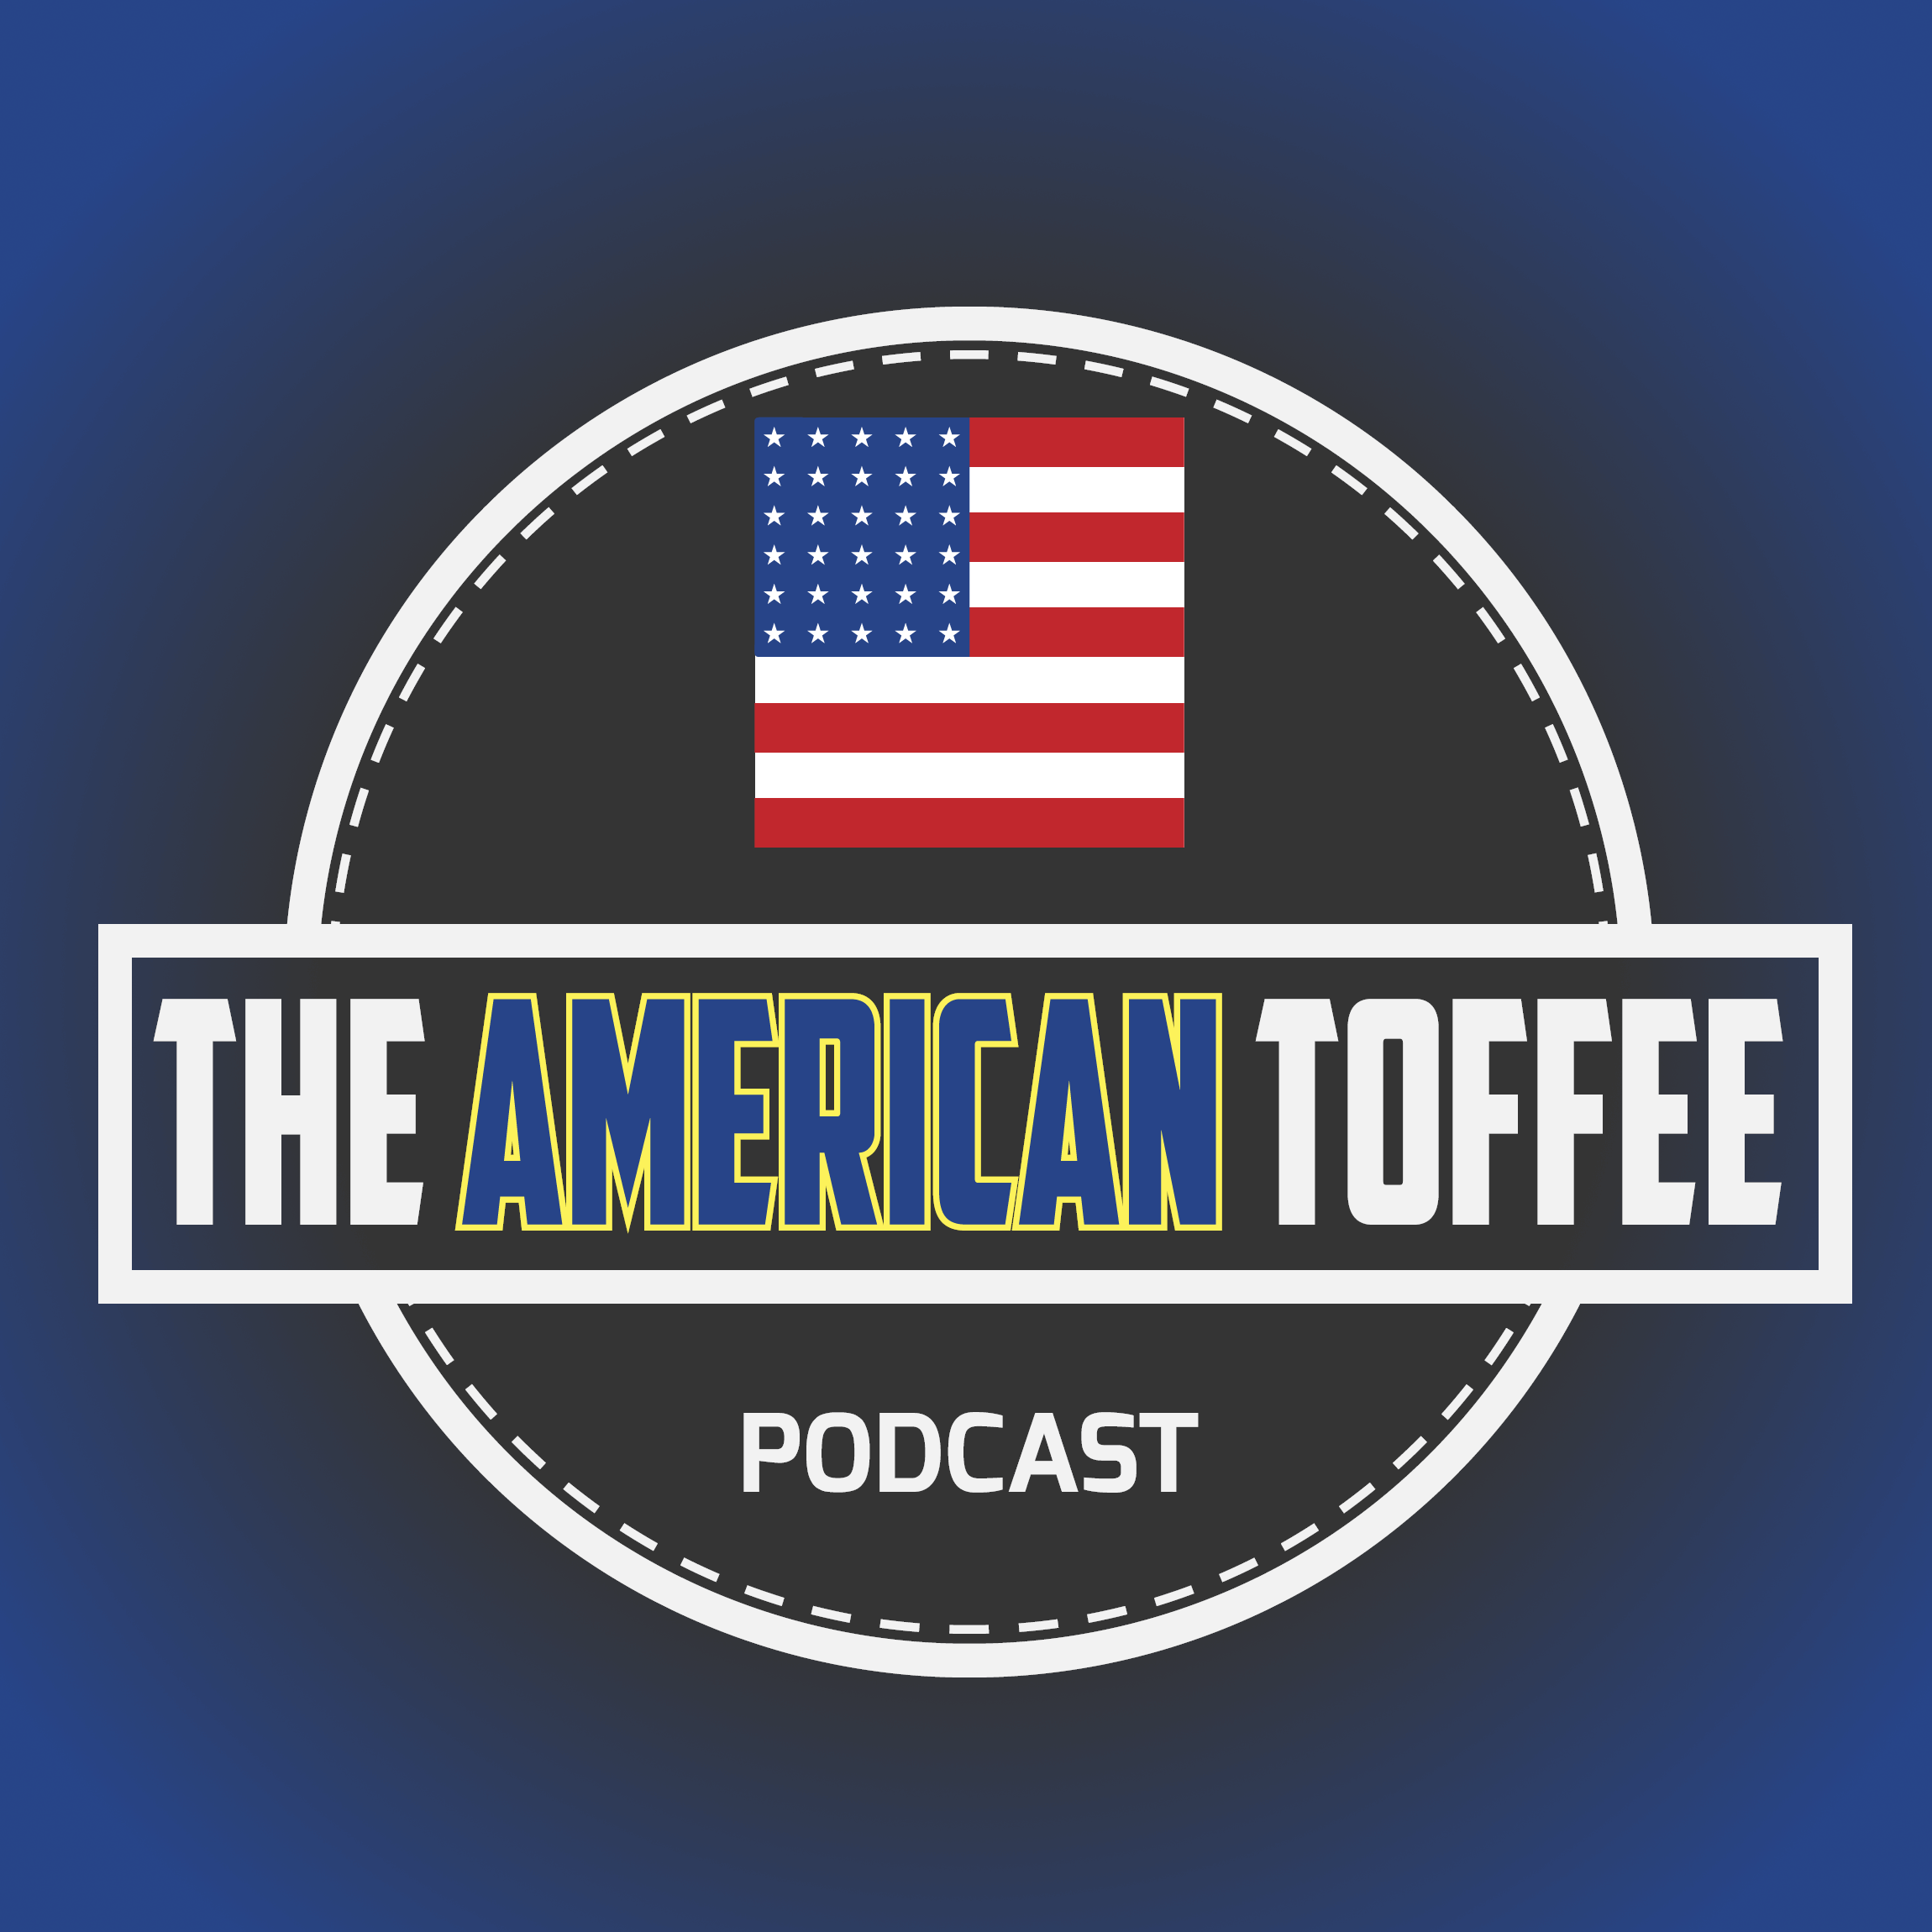 American Toffee Podcast